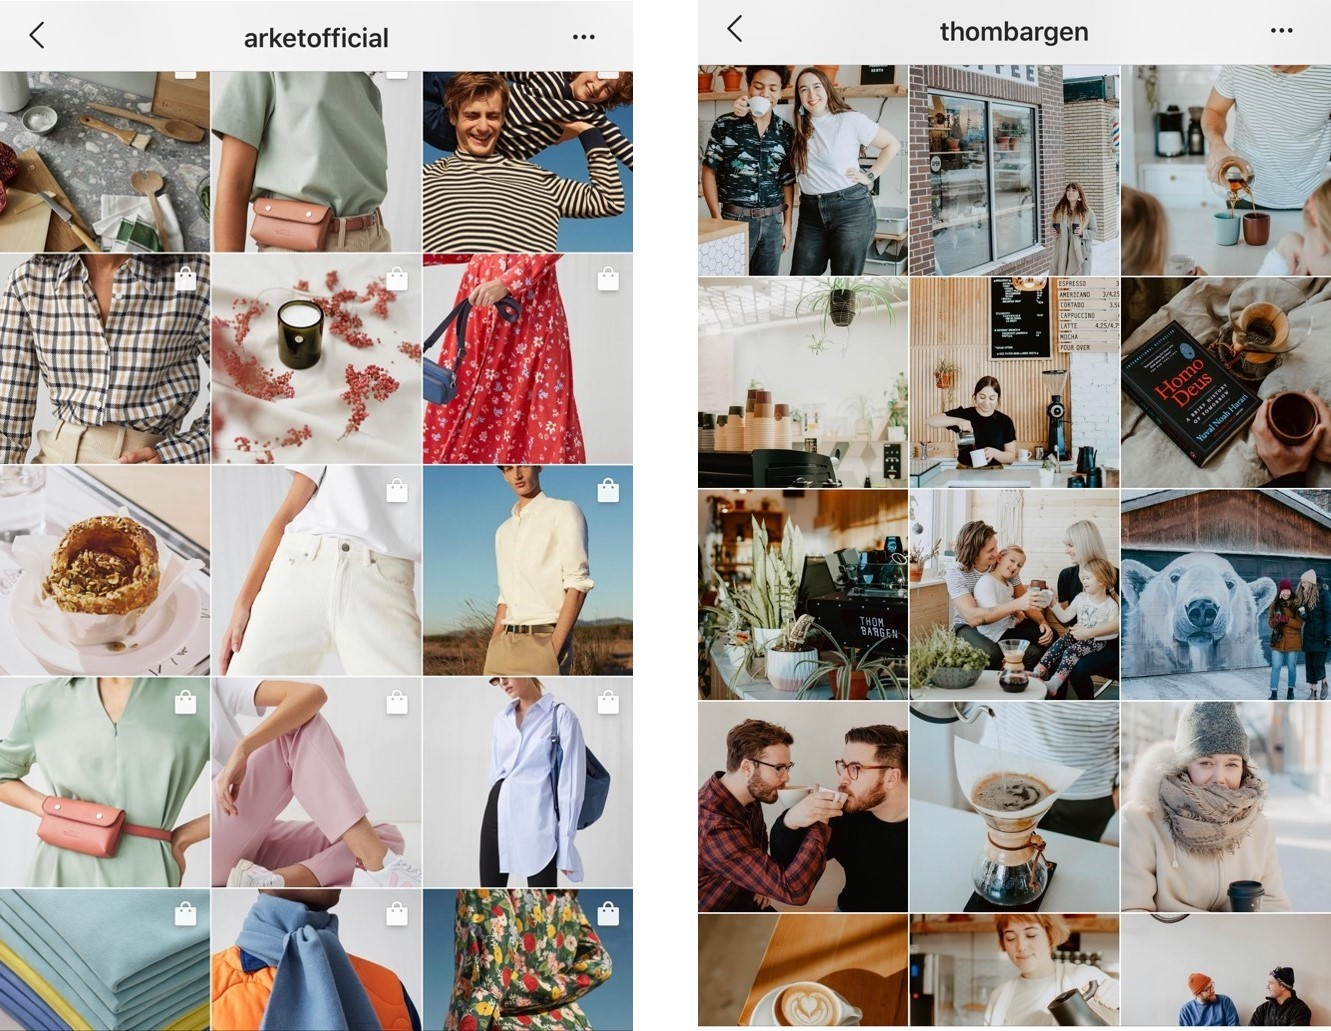 Instagram Feed Theme Example - Thom Bargen and Arket